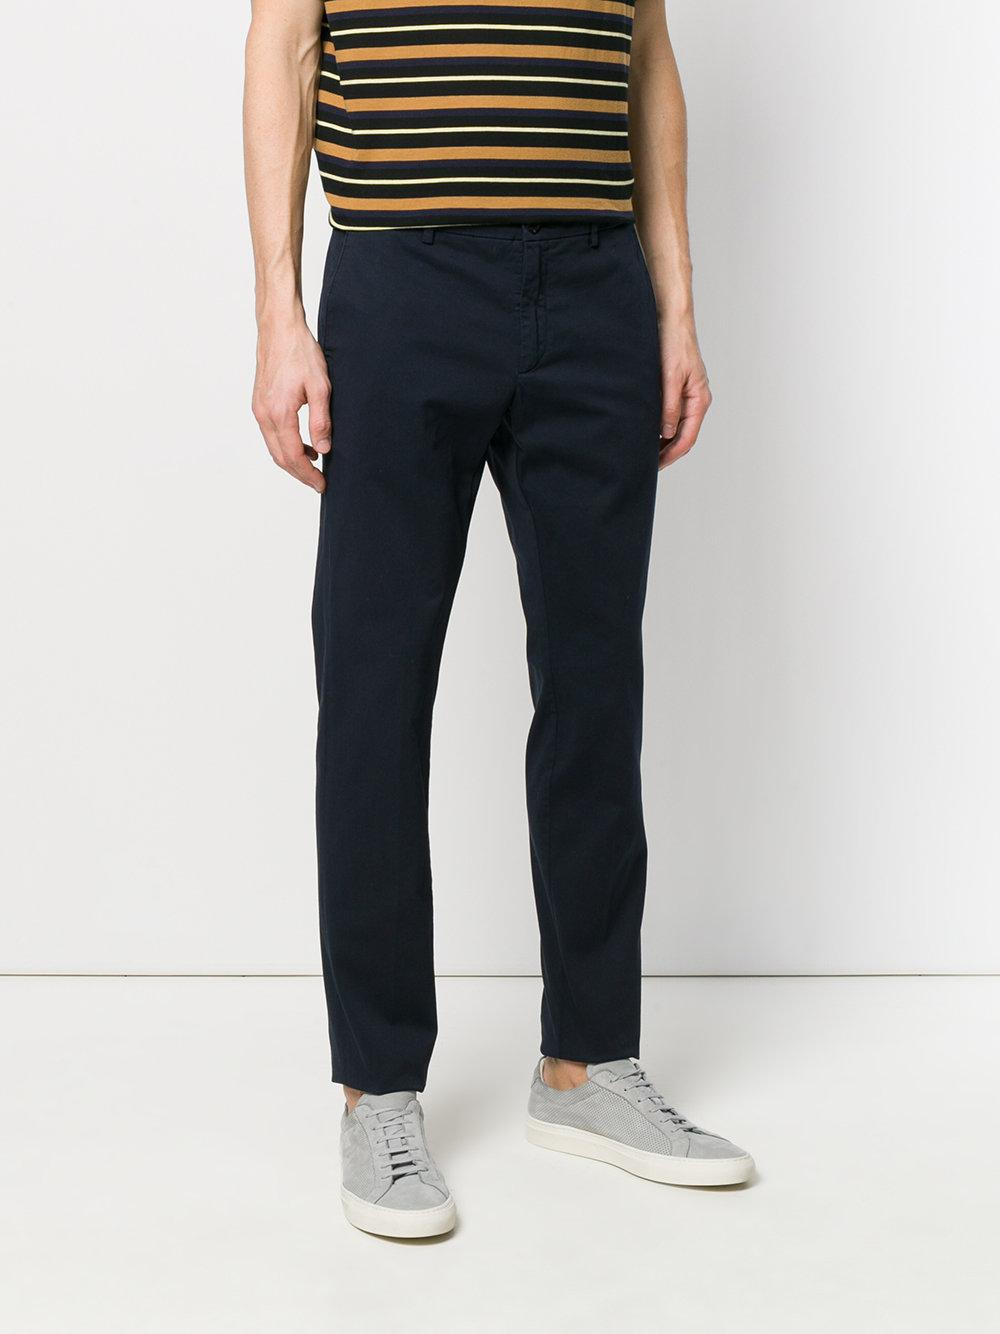 Department 5 Cotton David Trousers in Blue for Men